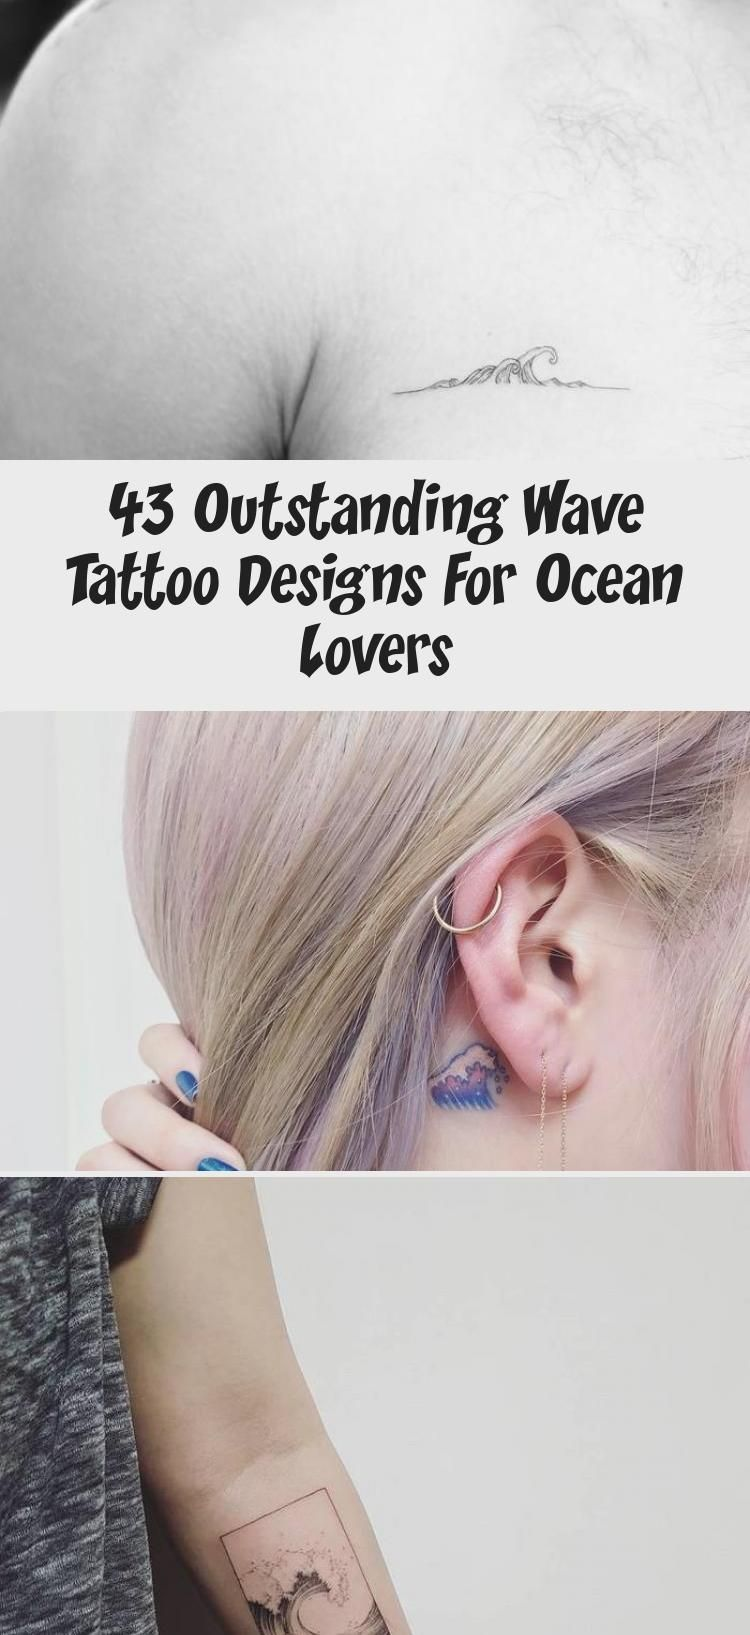 Photo of 43 Outstanding Wave Tattoo Designs For Ocean Lovers – Tattoos